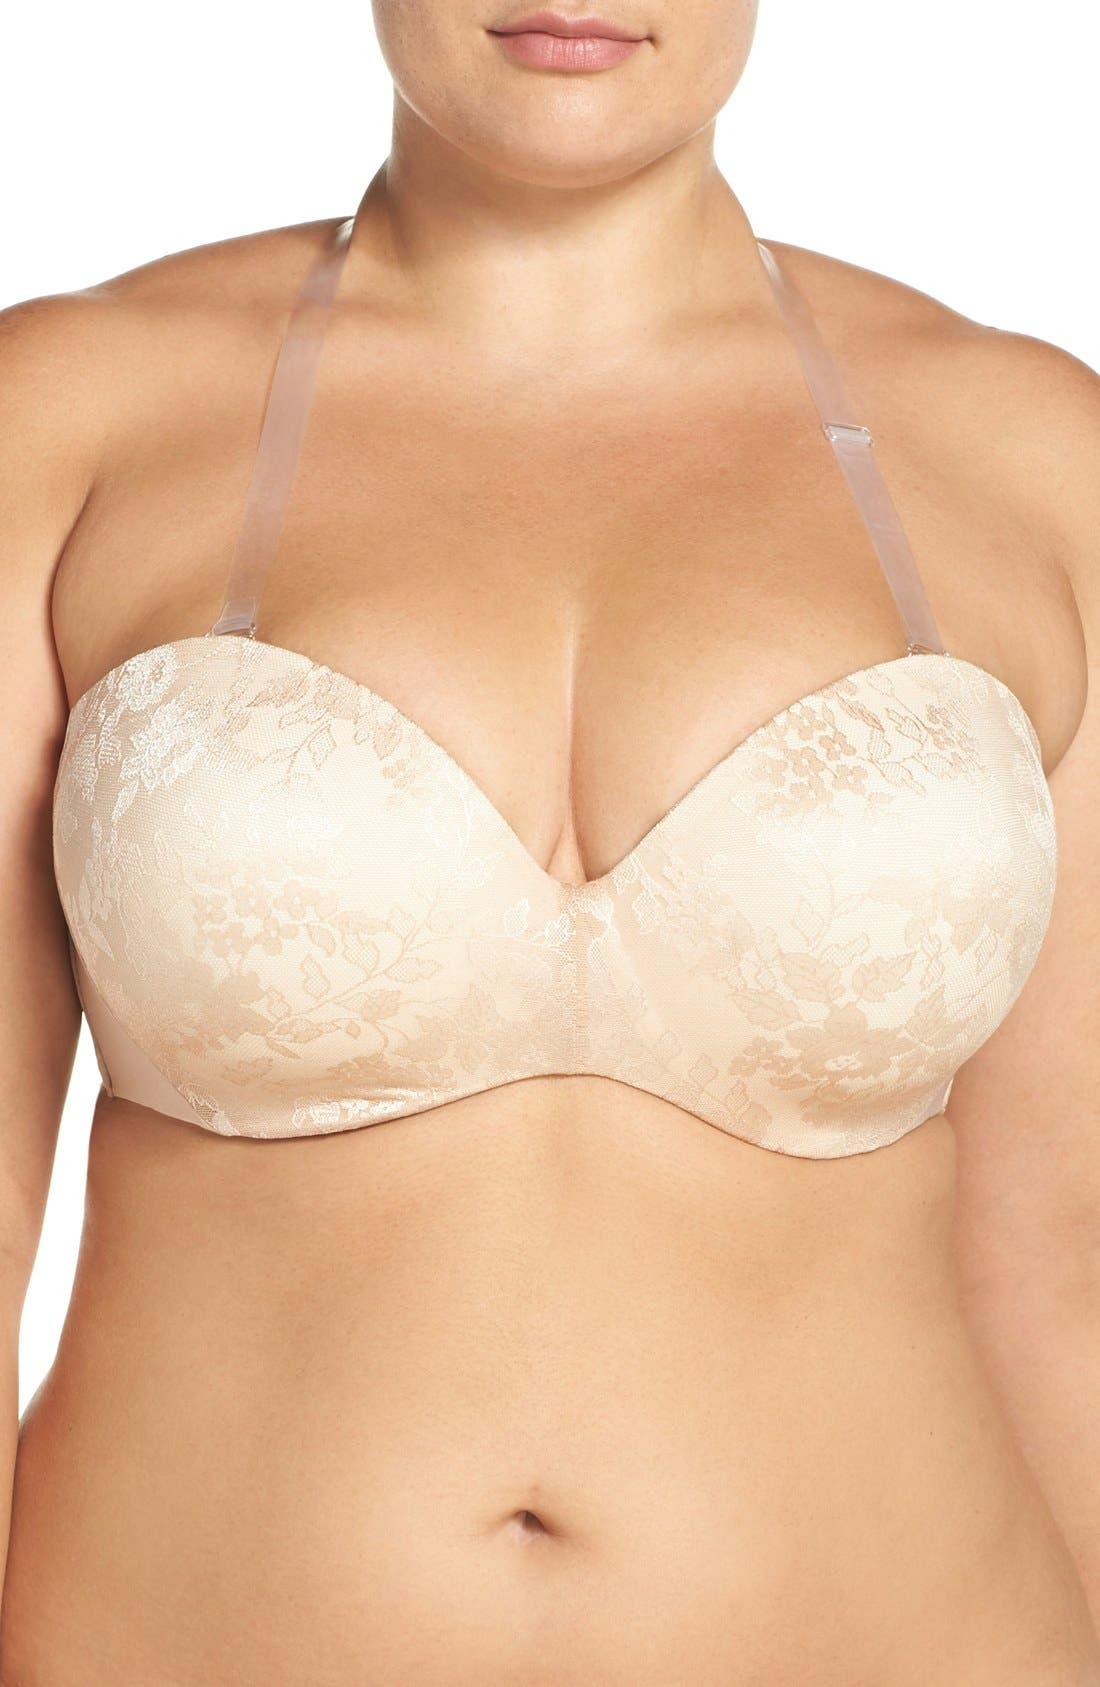 Strapless Underwire Push-Up Bra,                             Alternate thumbnail 2, color,                             Nude